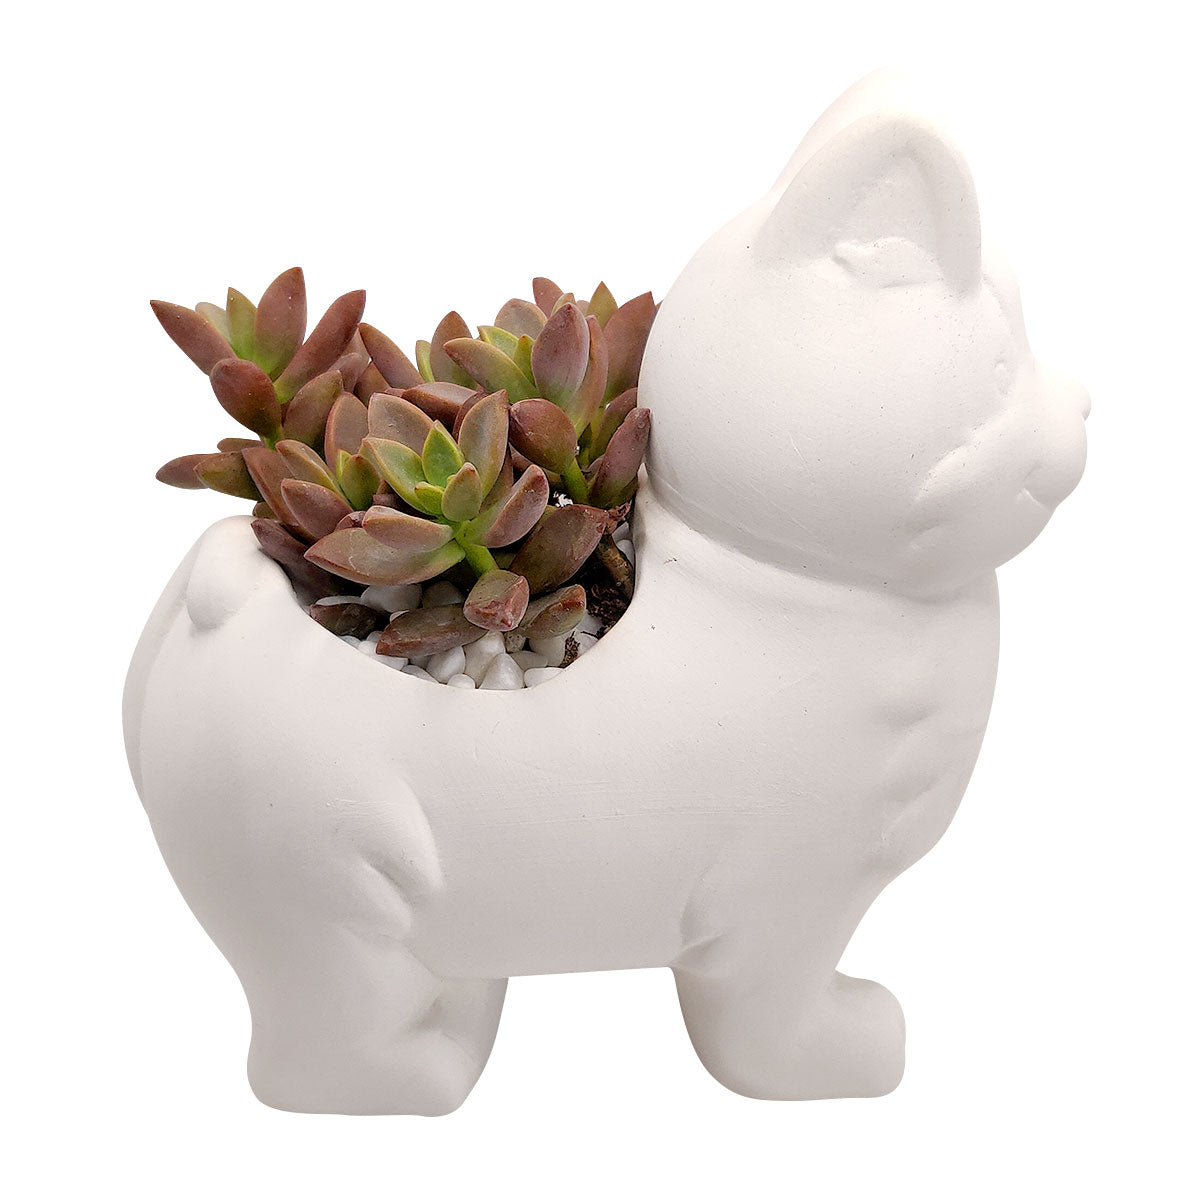 DIY Ceramic Kitty Pot for sale, White Ceramic Dog Planter Pot, Unique Succulent Gift, craft supplies, dog shaped planter pot, succulent pot plant pot DIY pot